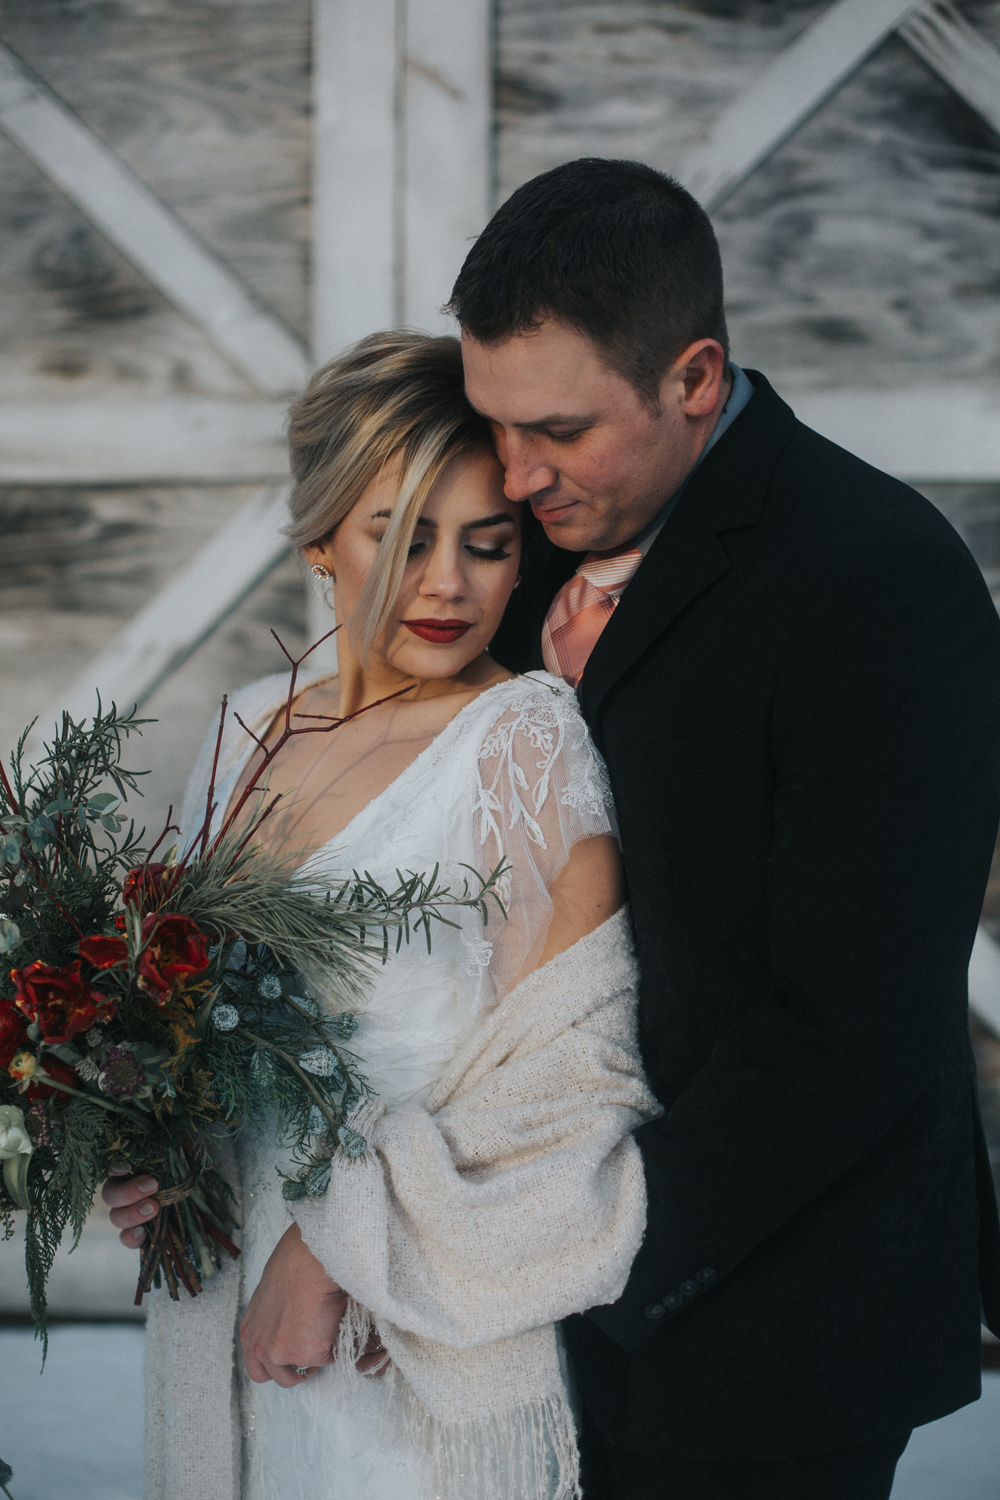 mnd_farm_winter_wedding_014.jpg